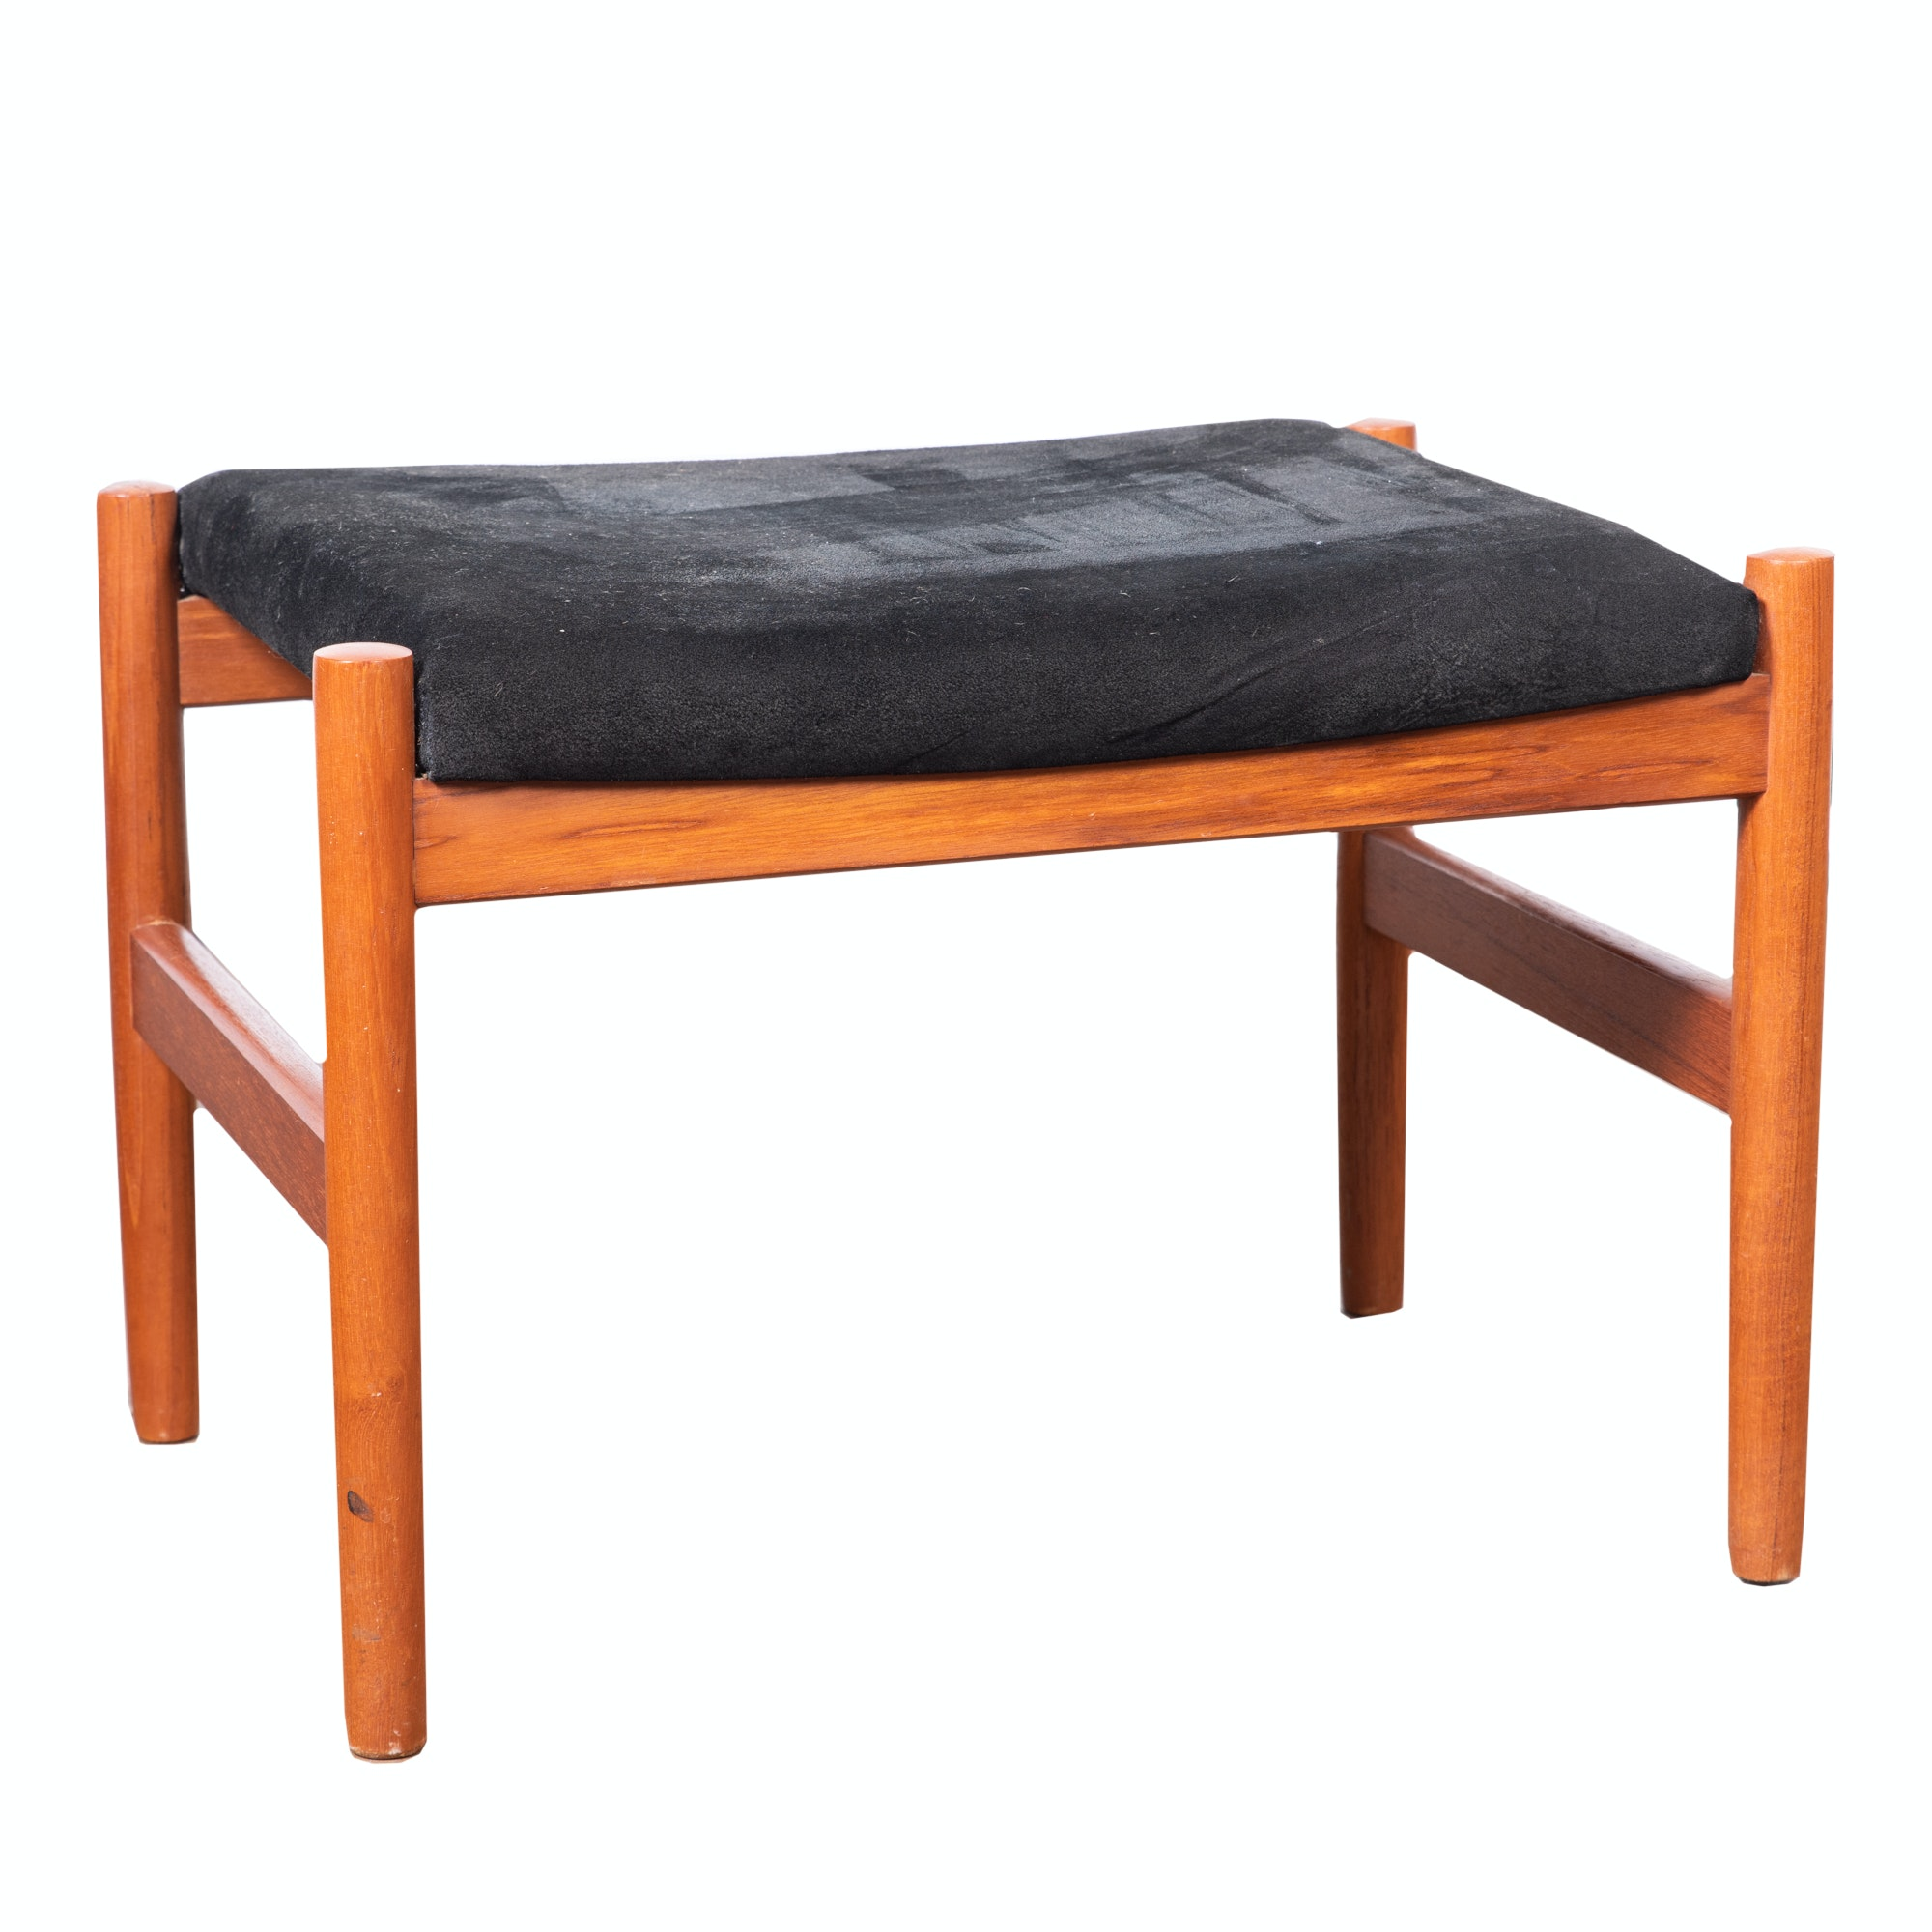 Danish Modern Style Upholstered Teak Small Ottoman, 20th Century